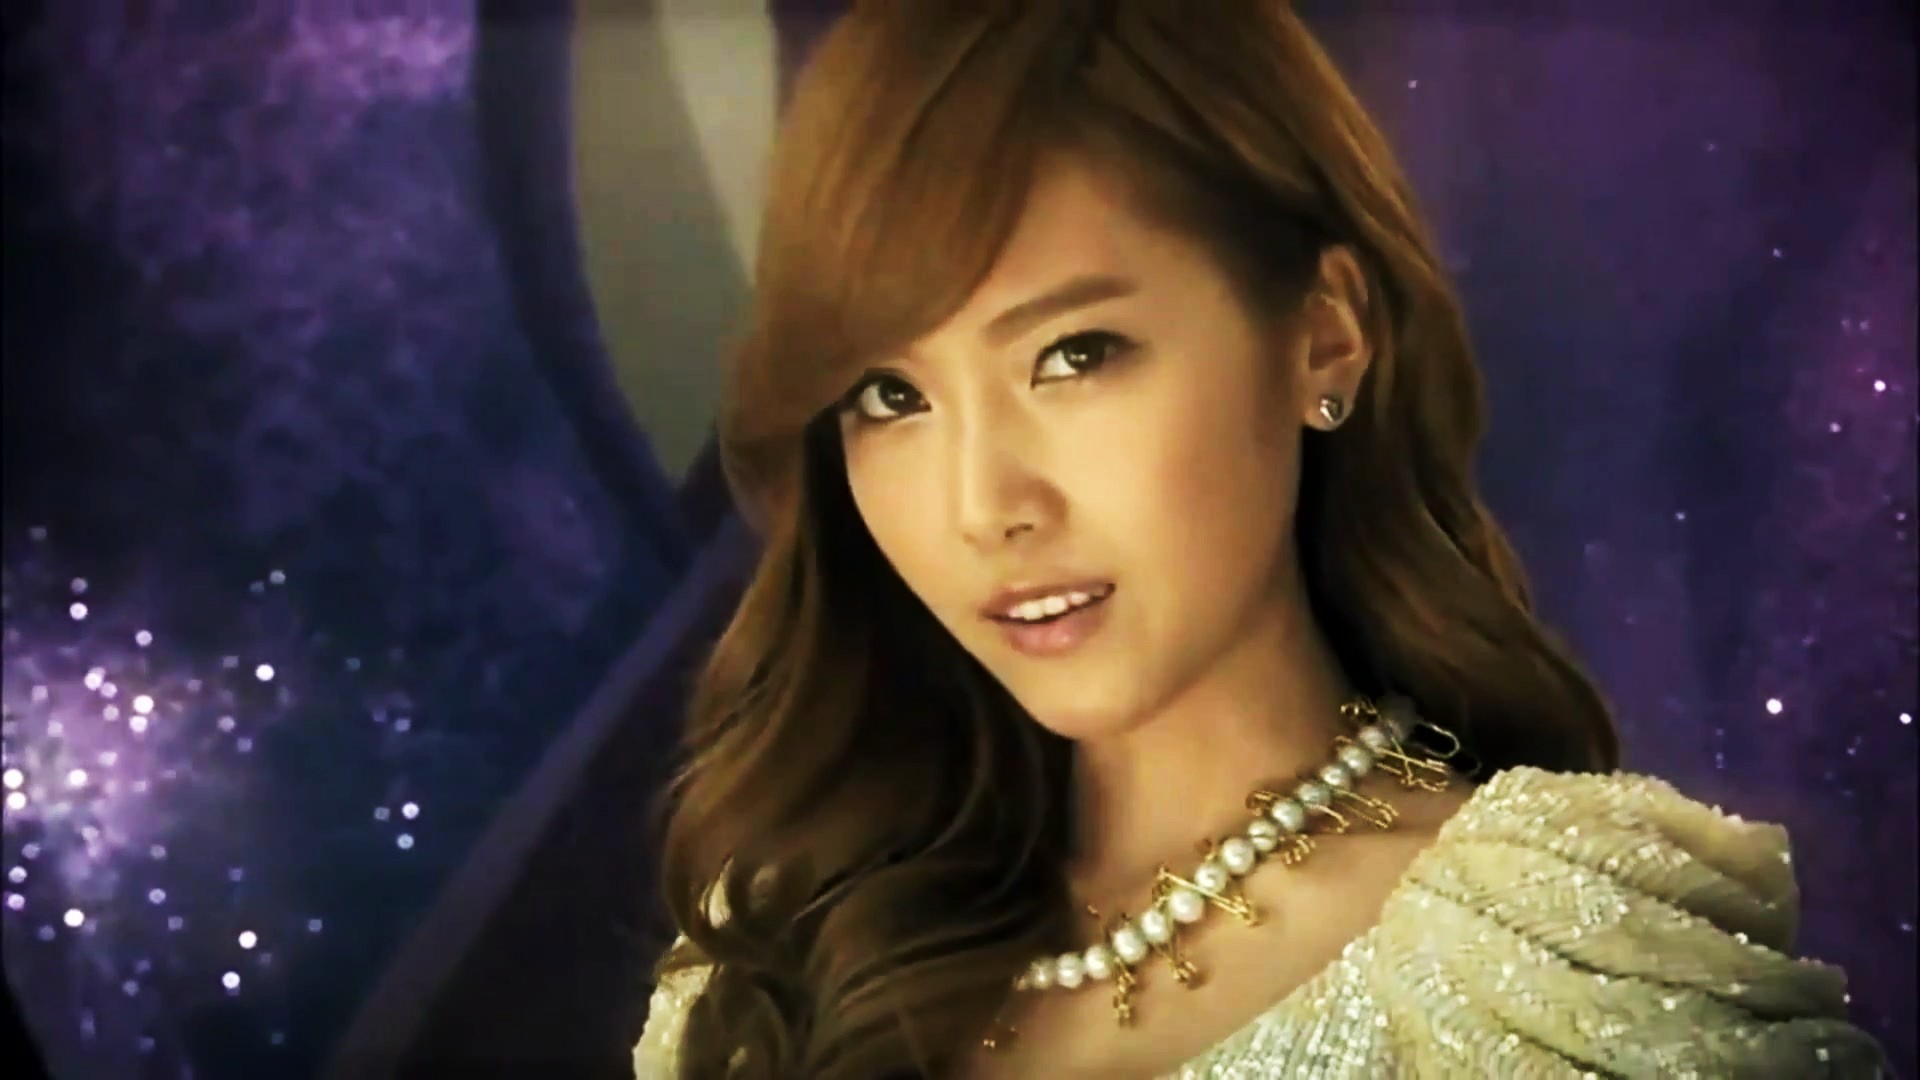 Jessica Jung Girls Generation Plastic Surgery Wild Romance